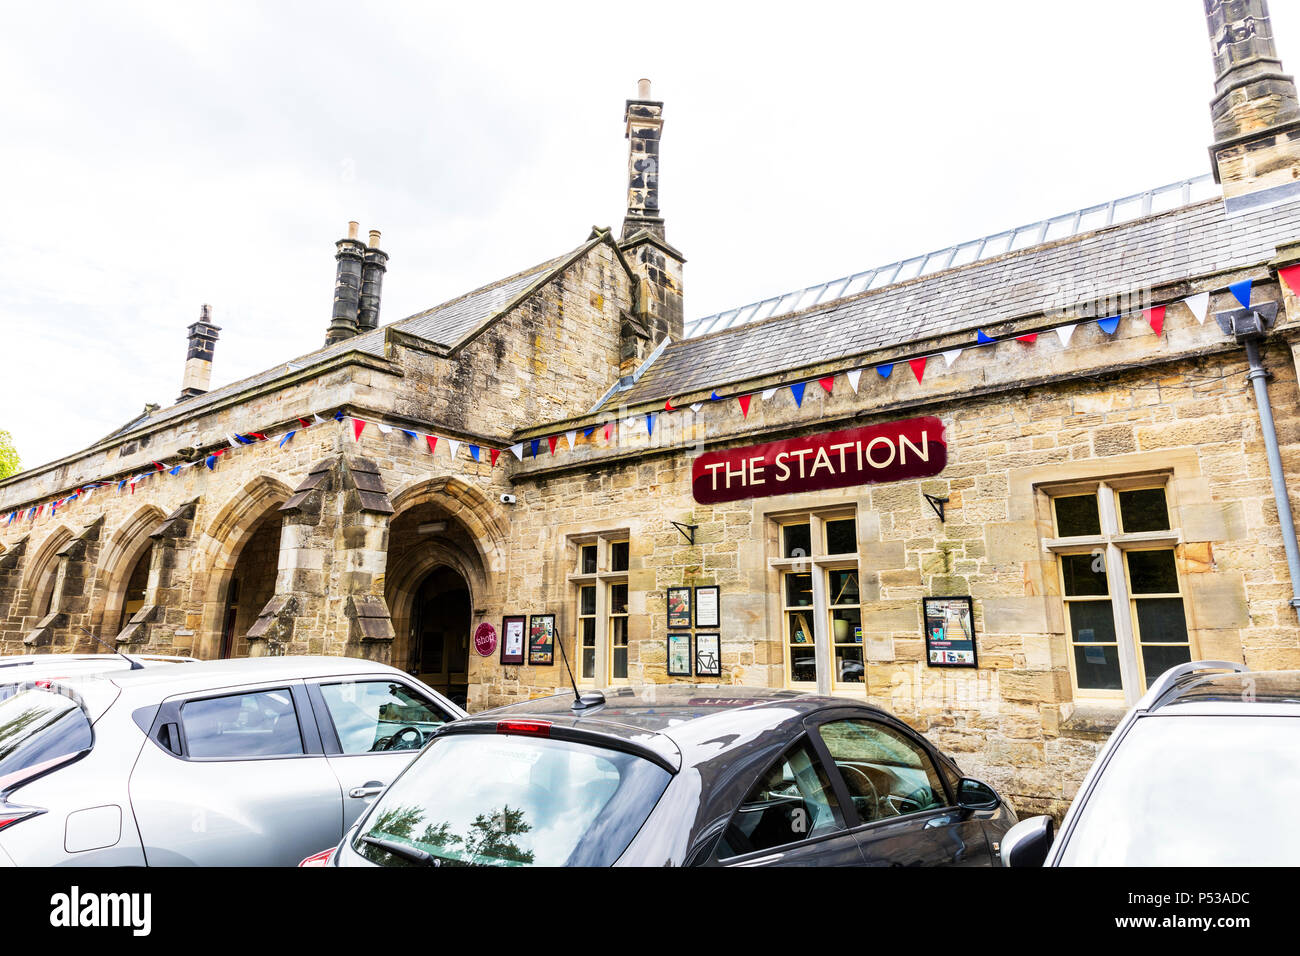 the station Richmond, Richmond Yorkshire UK, the station Richmond yorkshire, Disused railway station at Richmond Station North Yorkshire, building, UK - Stock Image